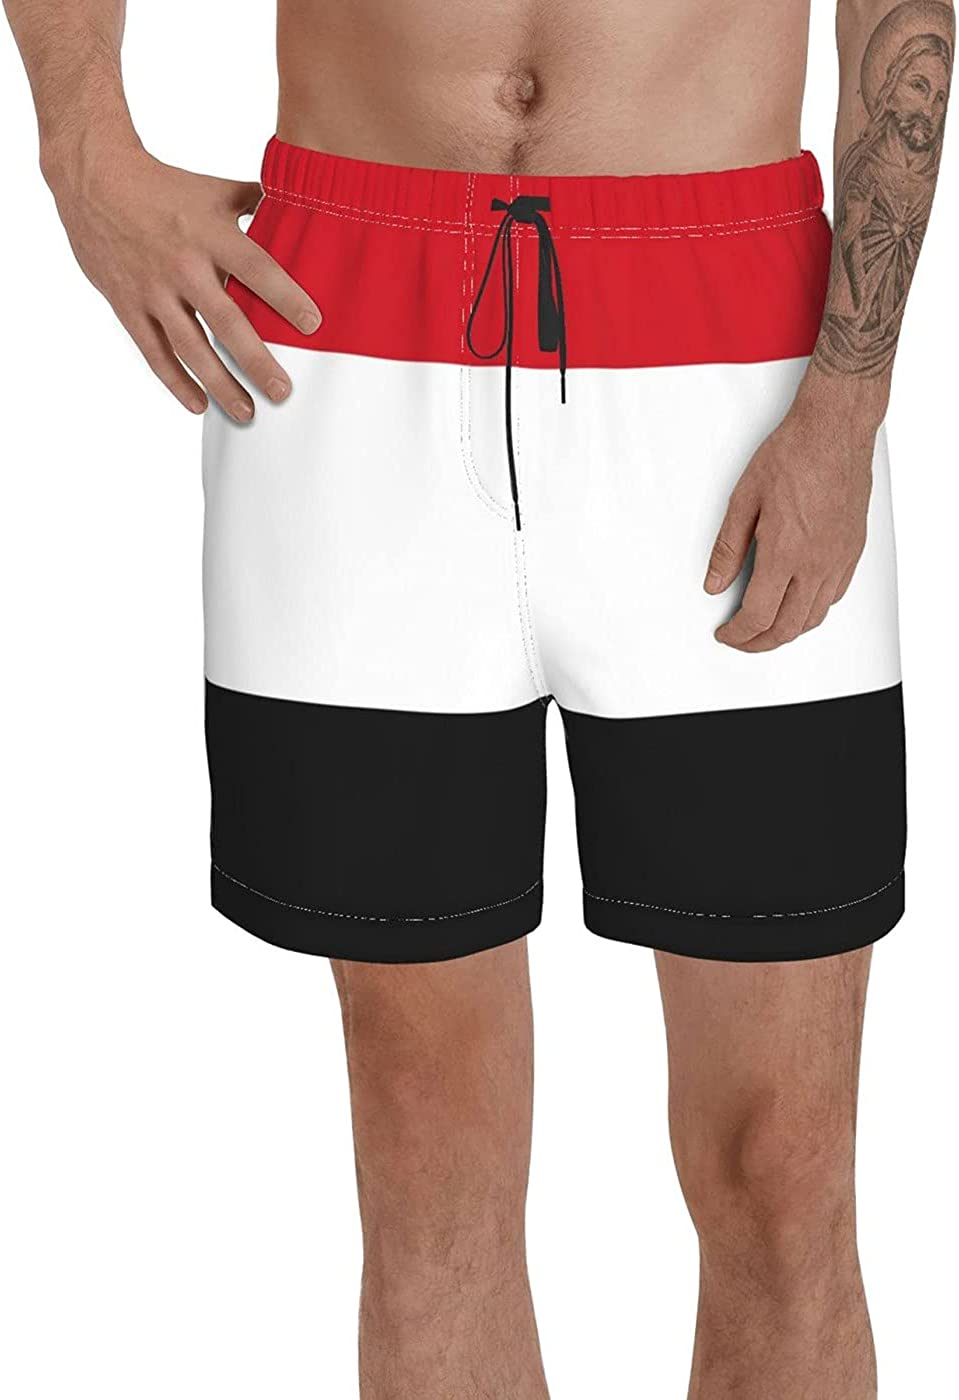 Count Yemen Flag Men's 3D Printed Funny Summer Quick Dry Swim Short Board Shorts with